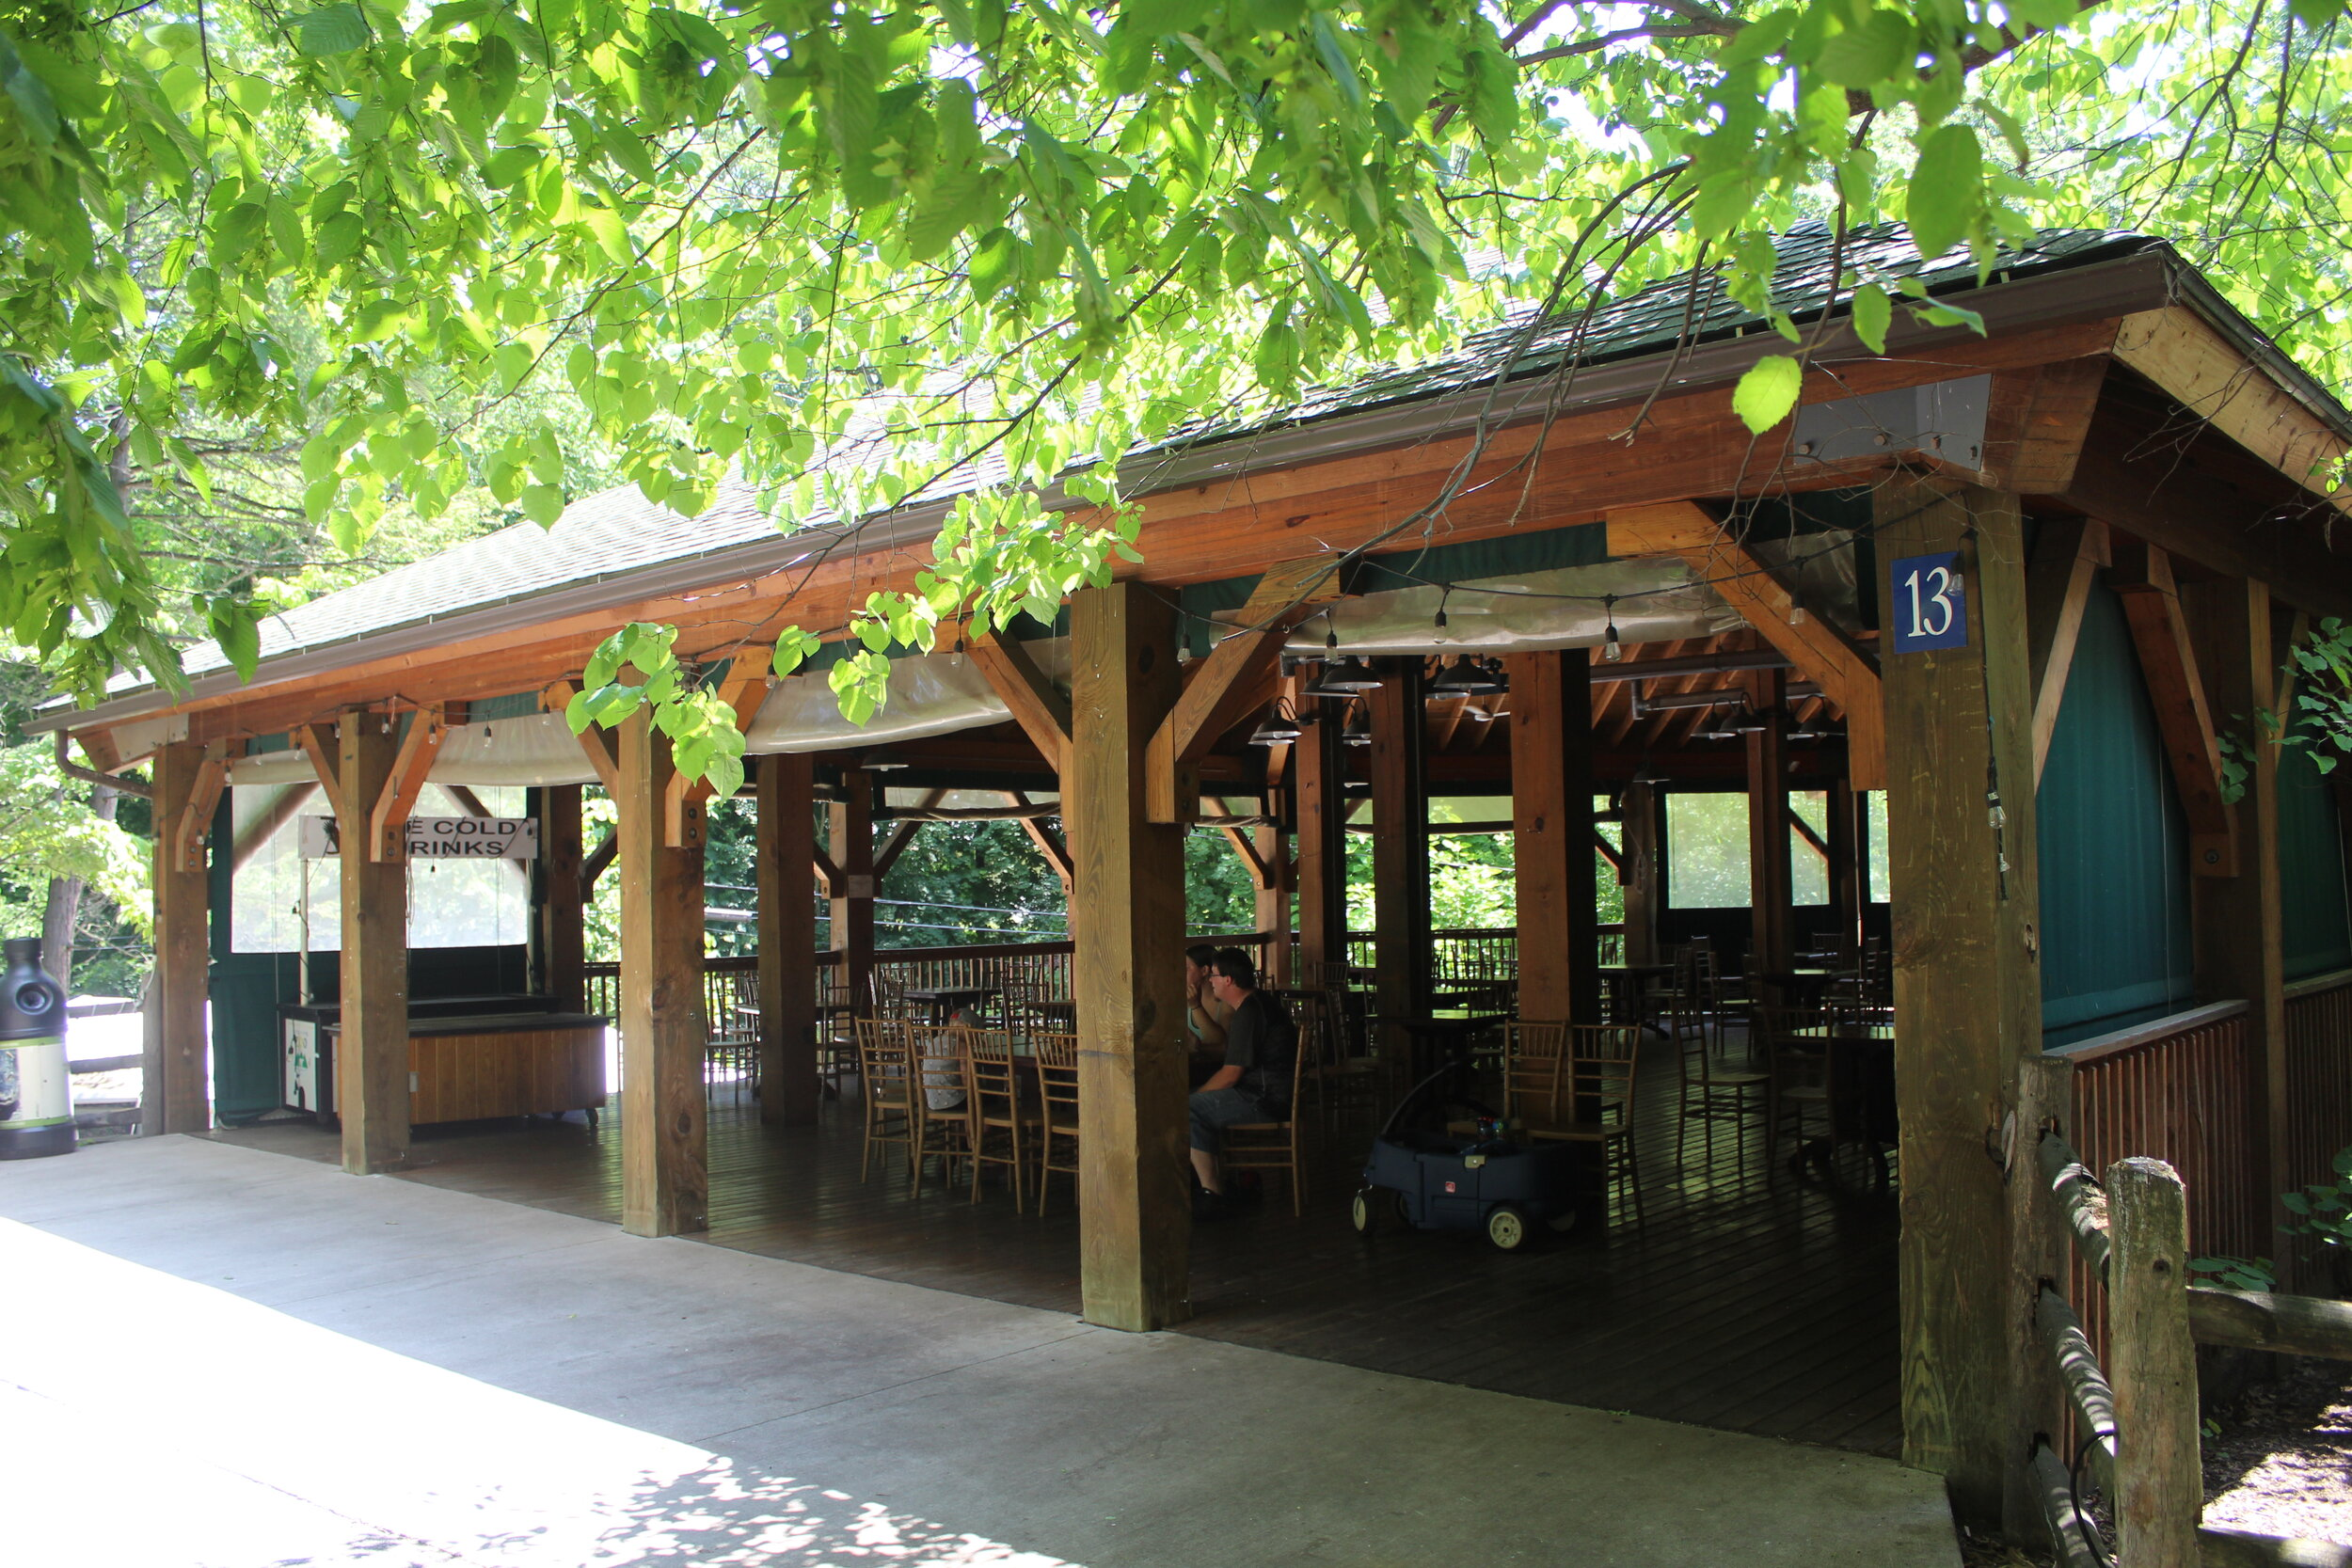 New rustic picnic shelter